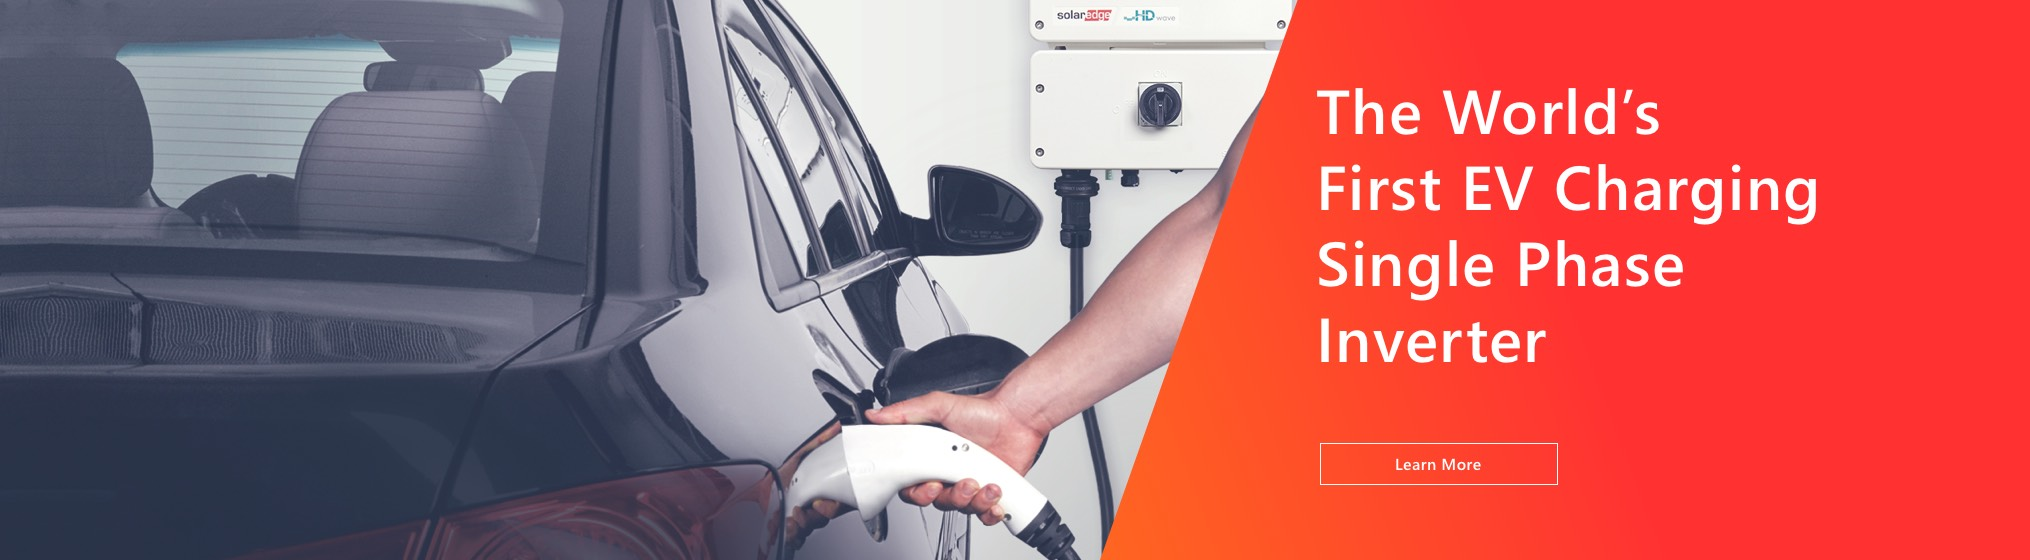 The World's First EV Charging Single Phase Inverter. Learn More